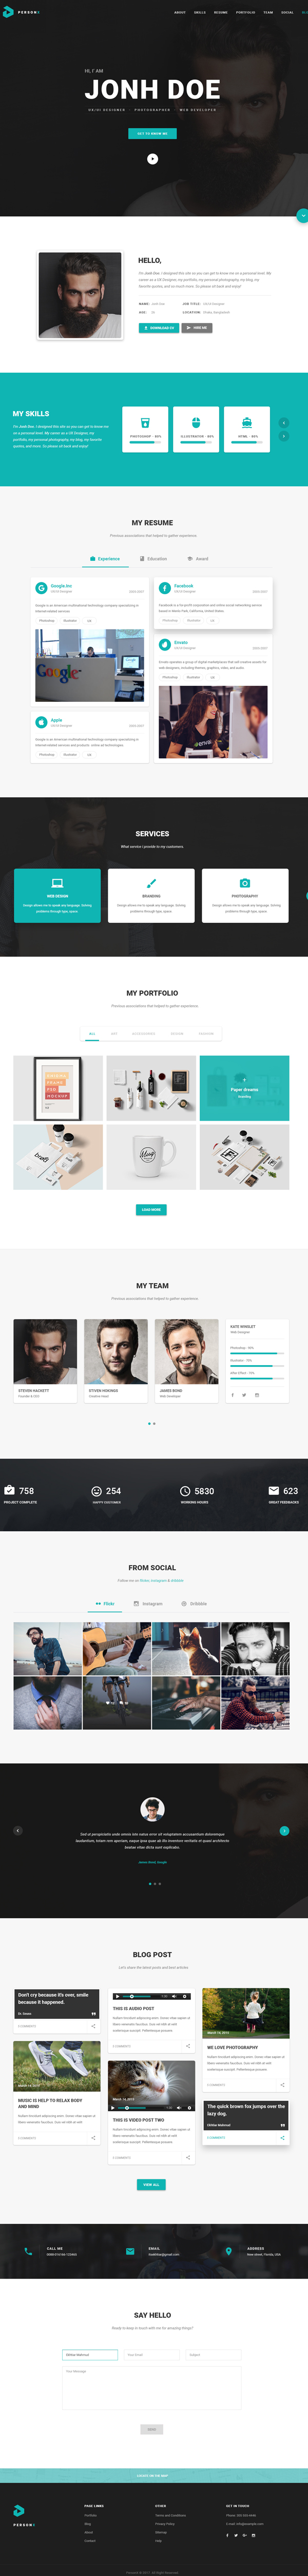 PersonX - Material Design Personal Theme